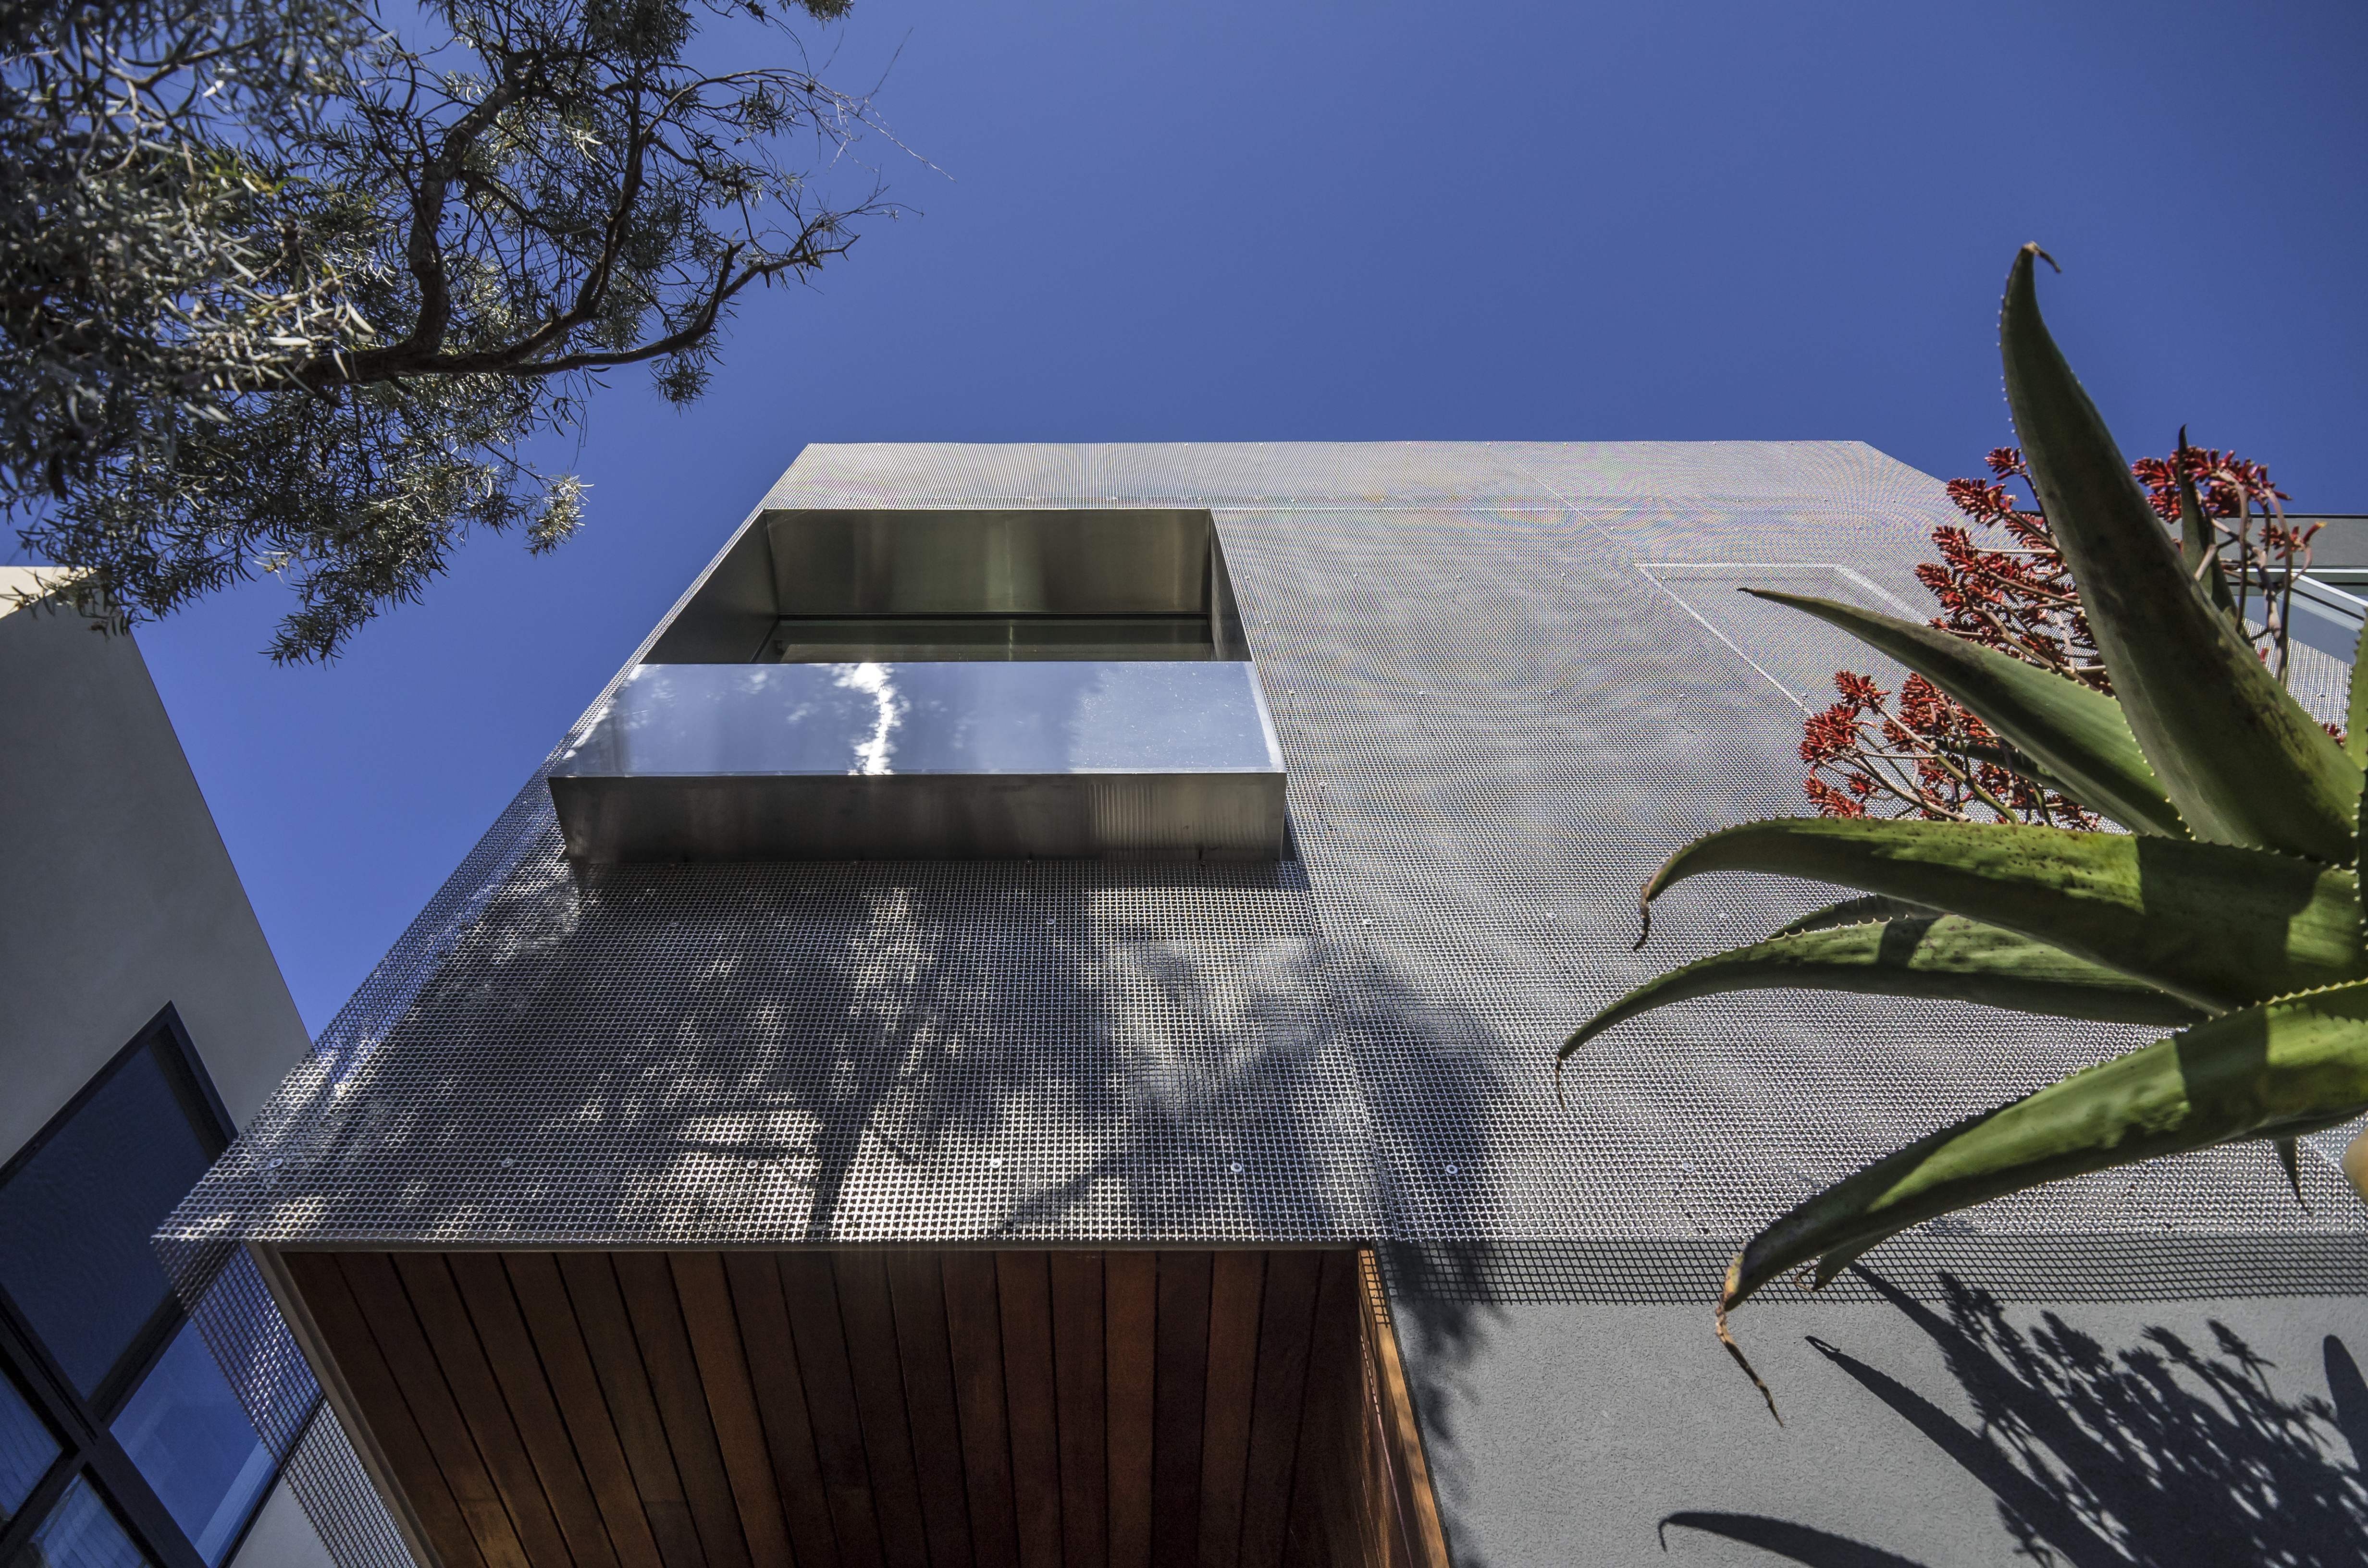 The S-9 wire mesh screen provides significant shading for the Southwest facade.